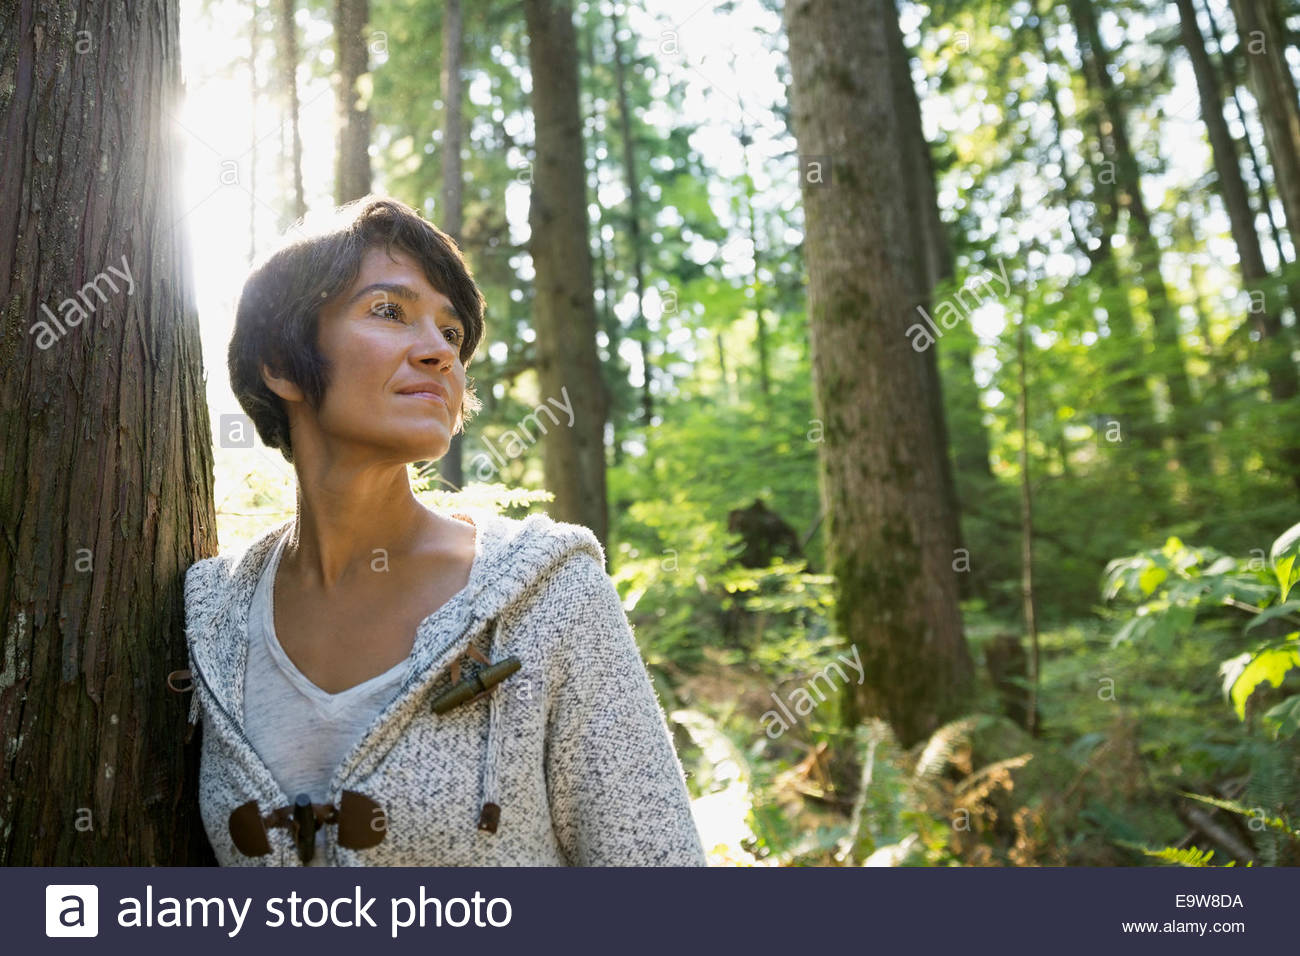 Serene woman leaning against tree in woods Photo Stock